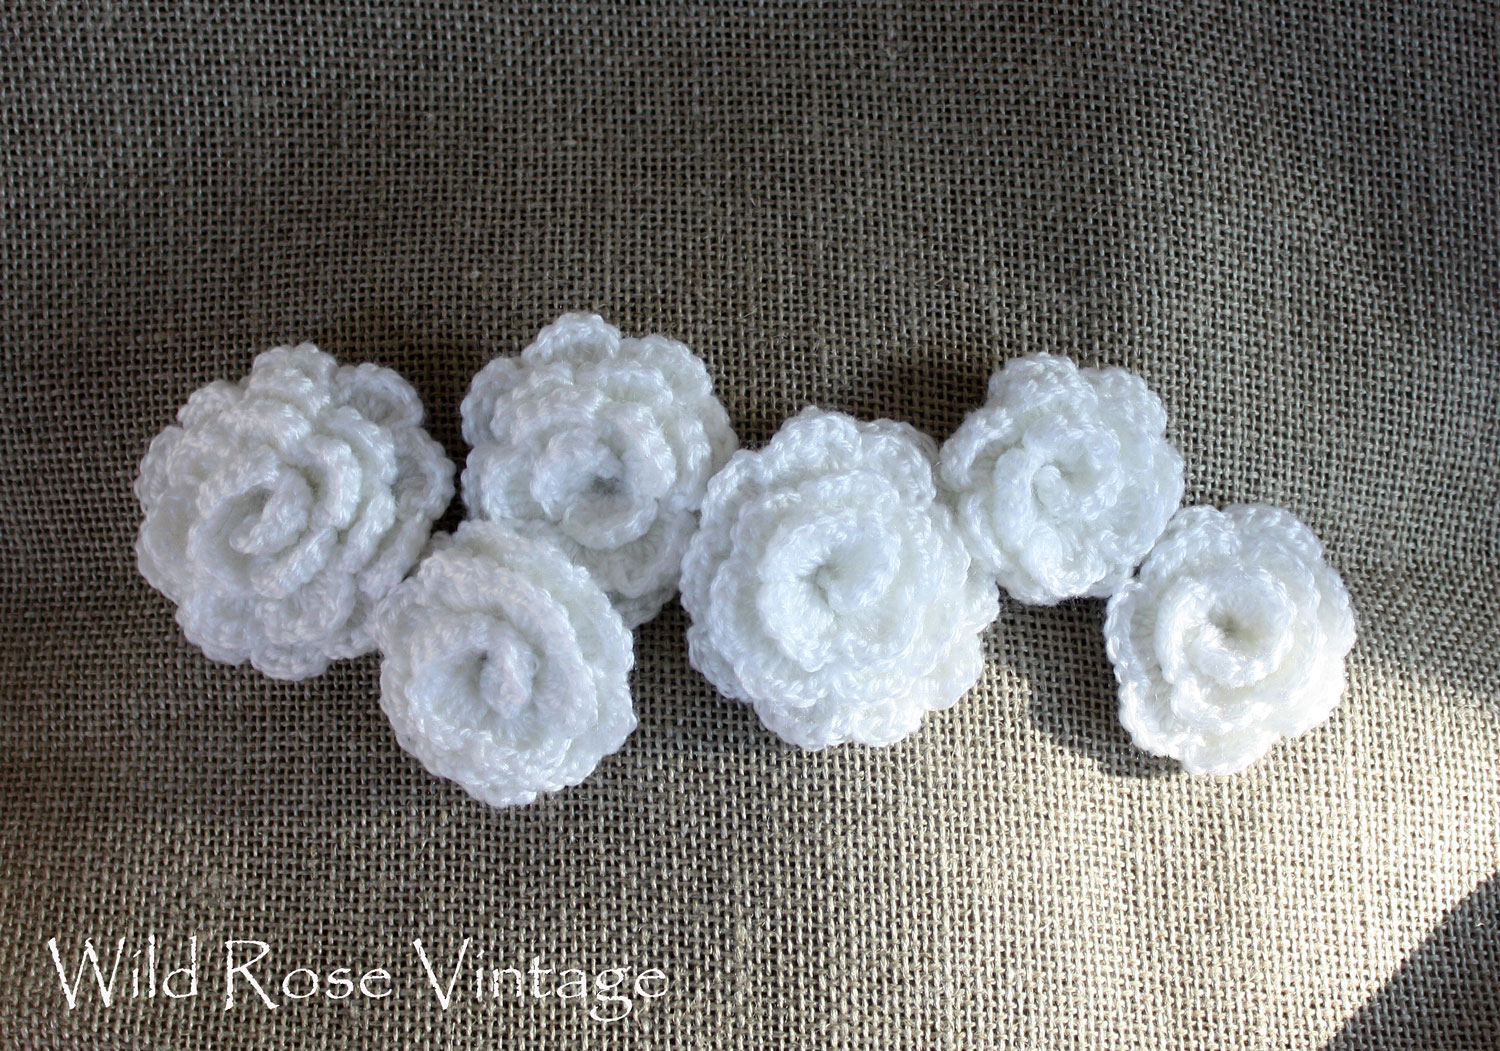 Crochet Pillow : Wild Rose Vintage: Crochet Roses Pillow